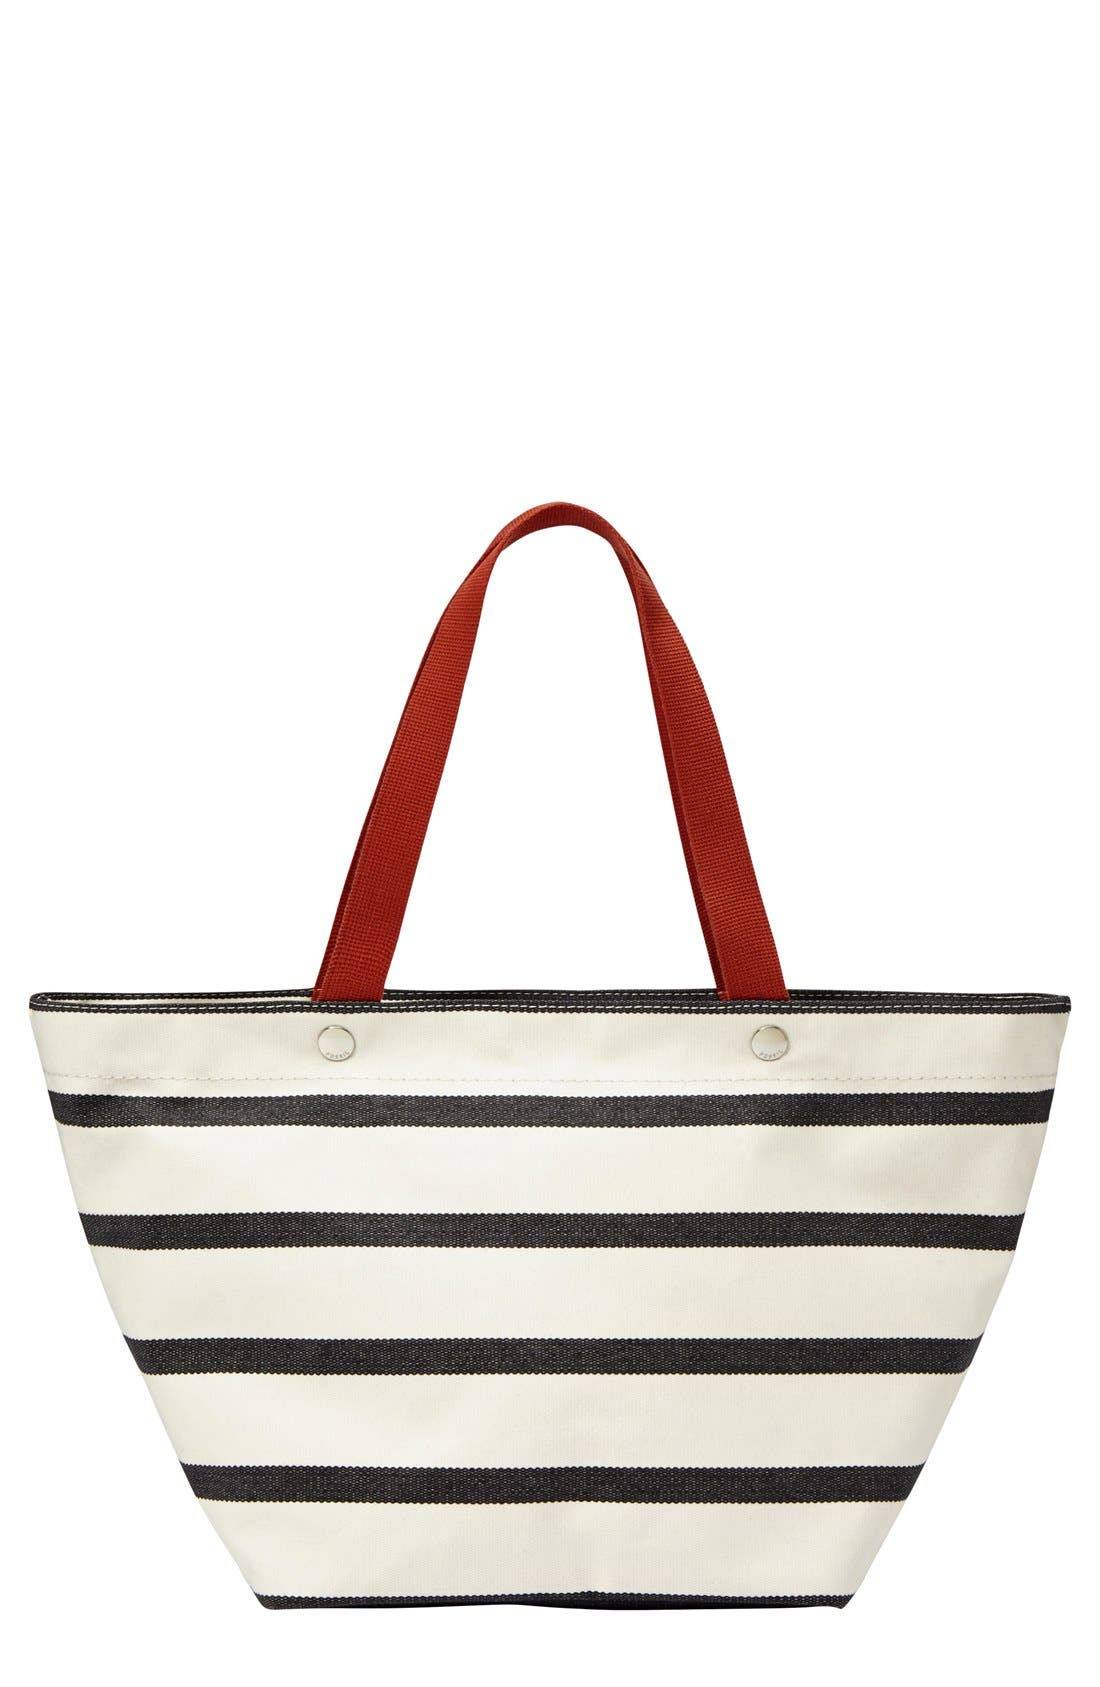 Alternate Image 1 Selected - Fossil 'East/West Keeper' Beach Tote